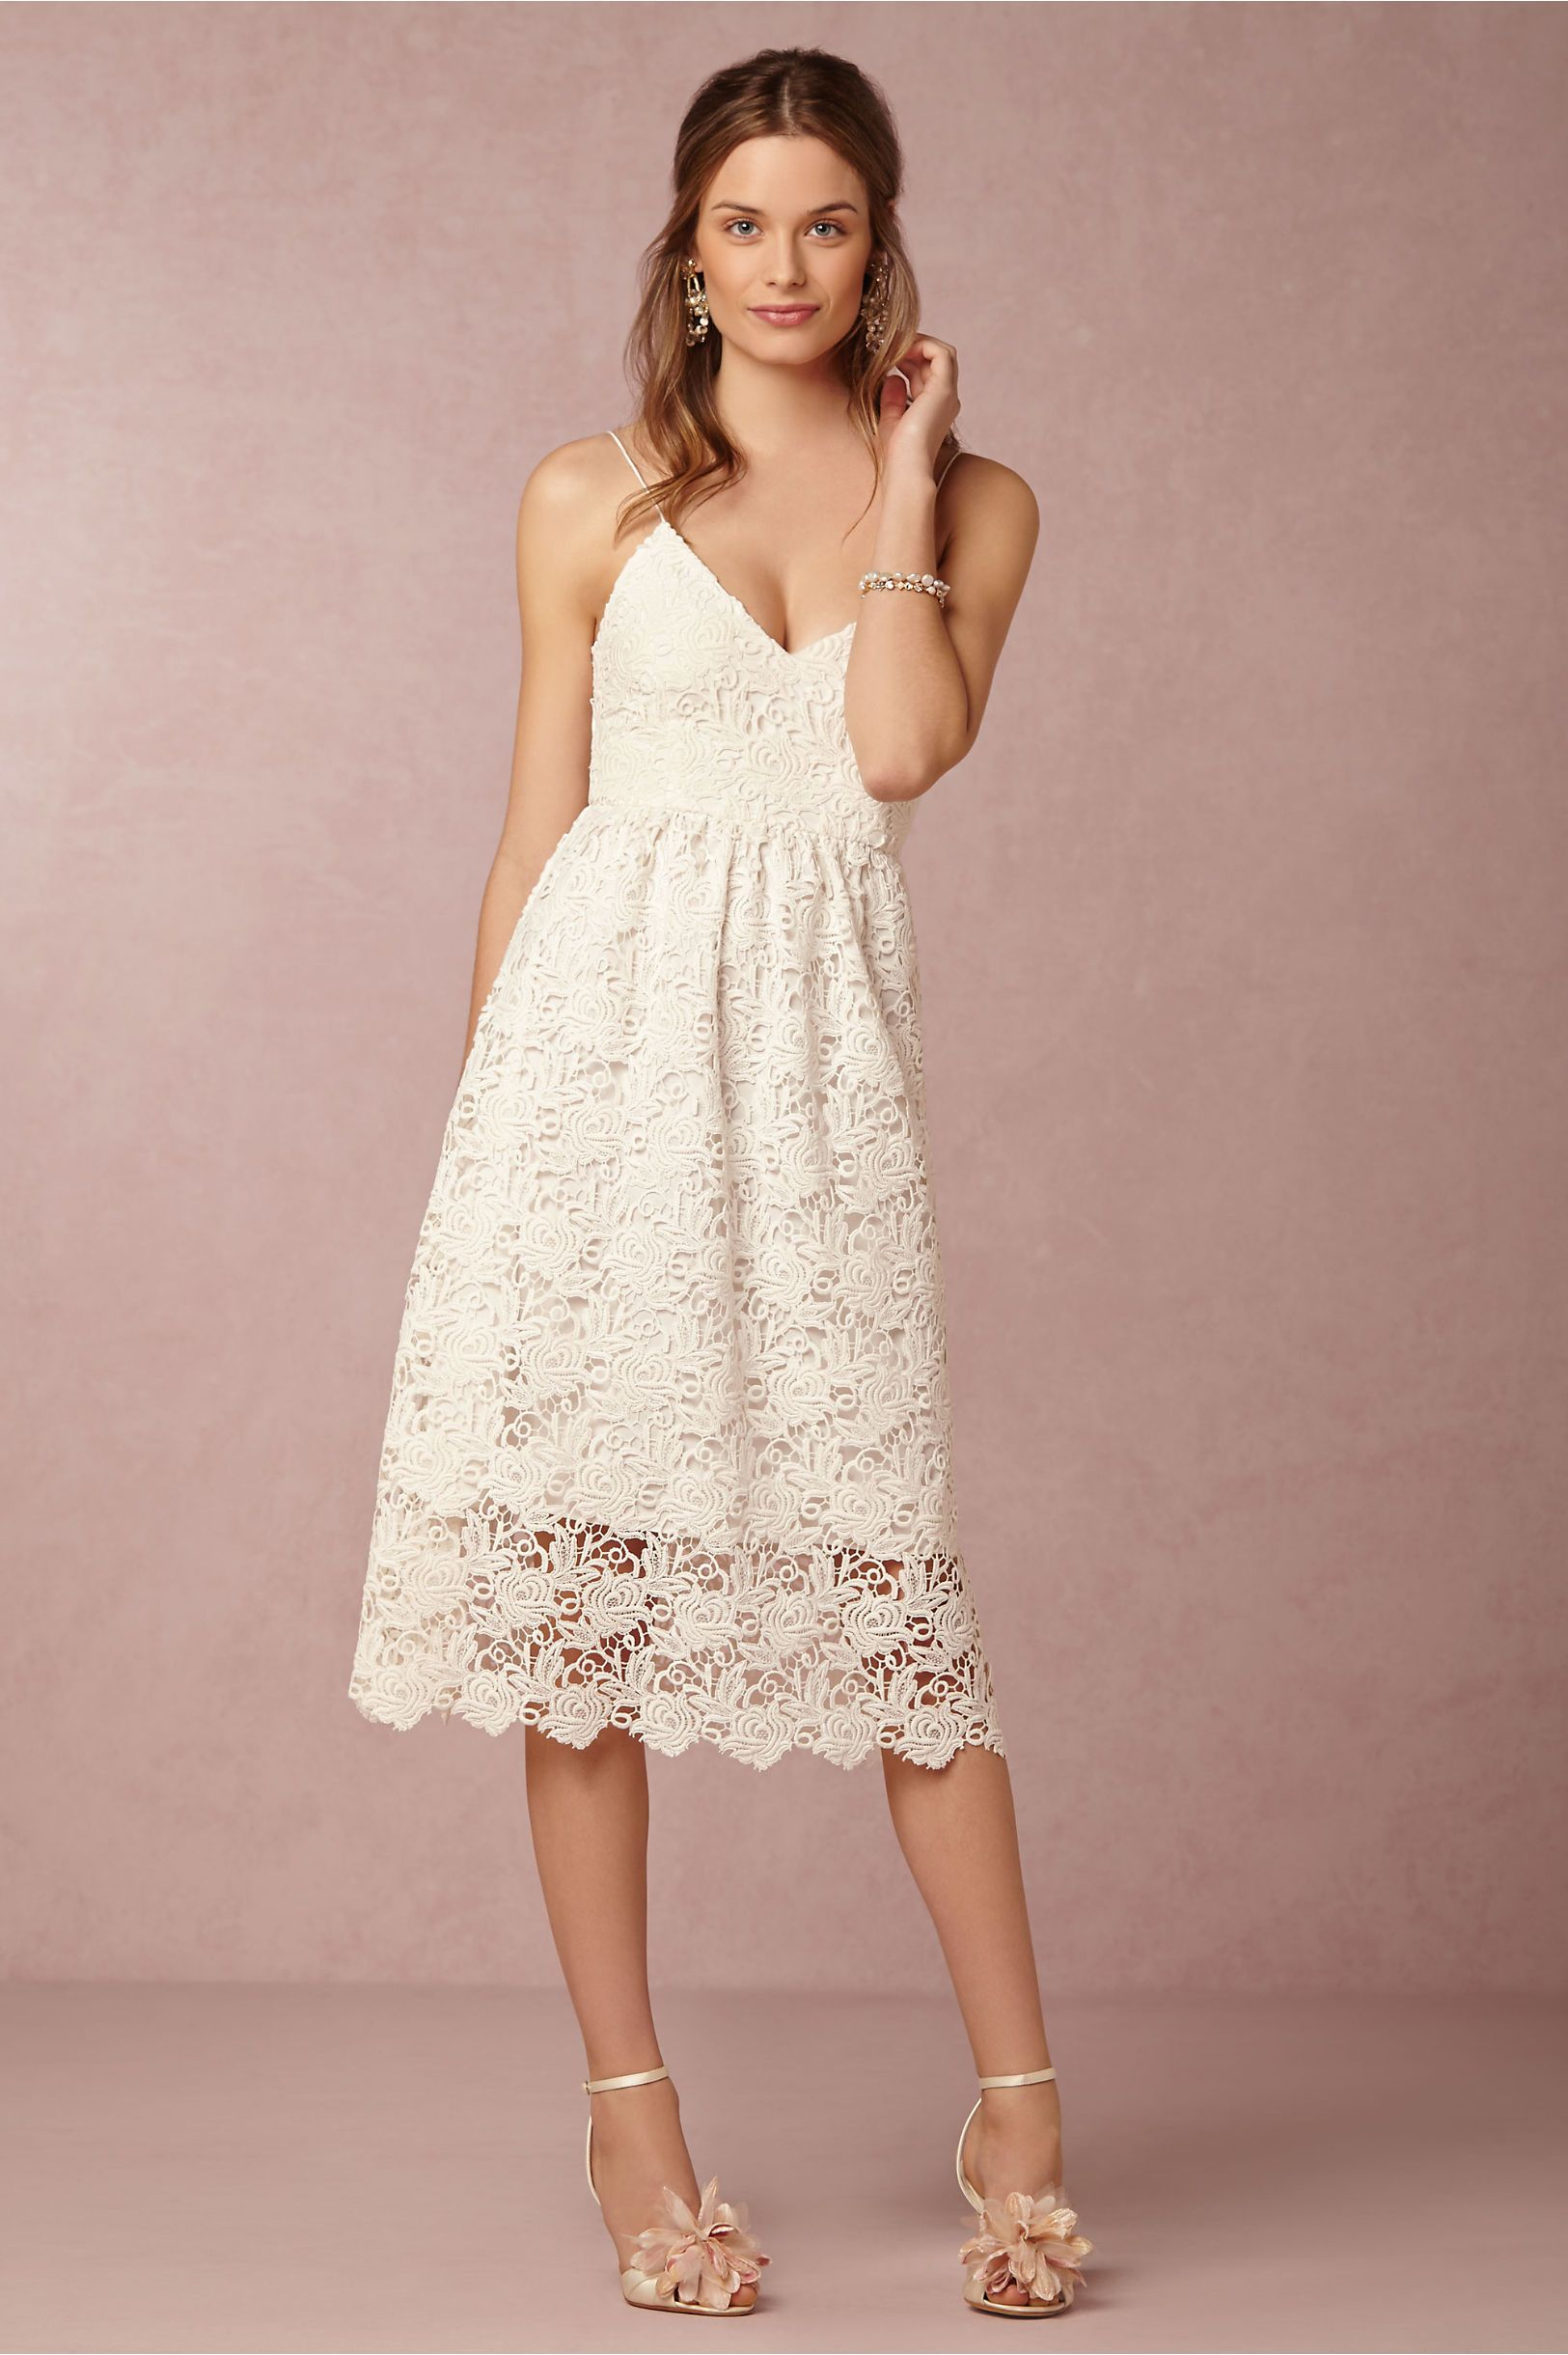 fabulous bridal shower dresses to wear if youre the bride dress for the wedding dress from bhldn